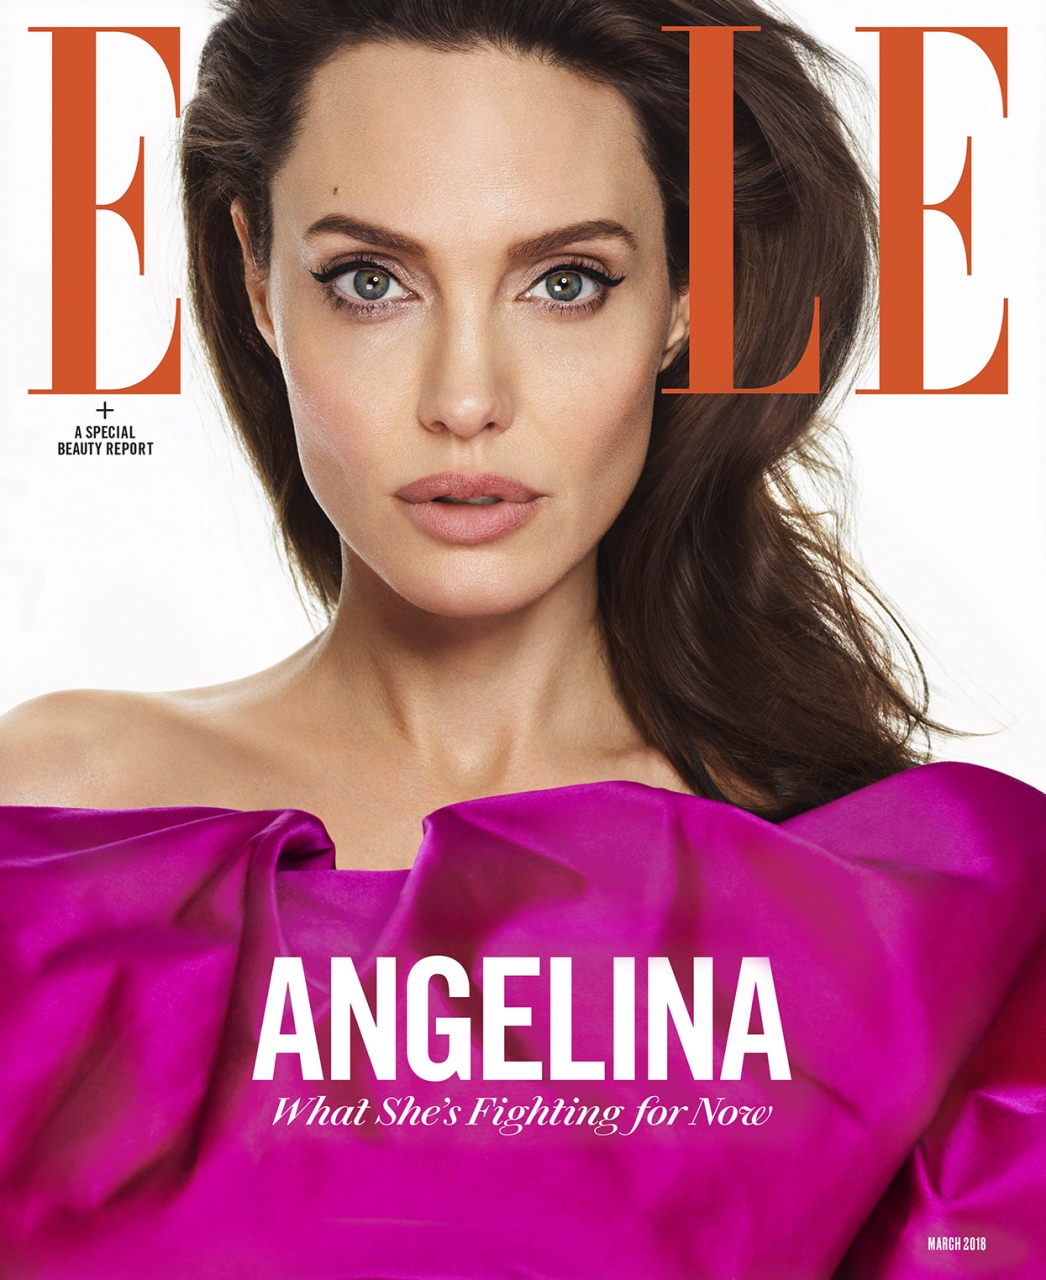 Angelina Jolie by Mariano Vivanco for ELLE March 2018